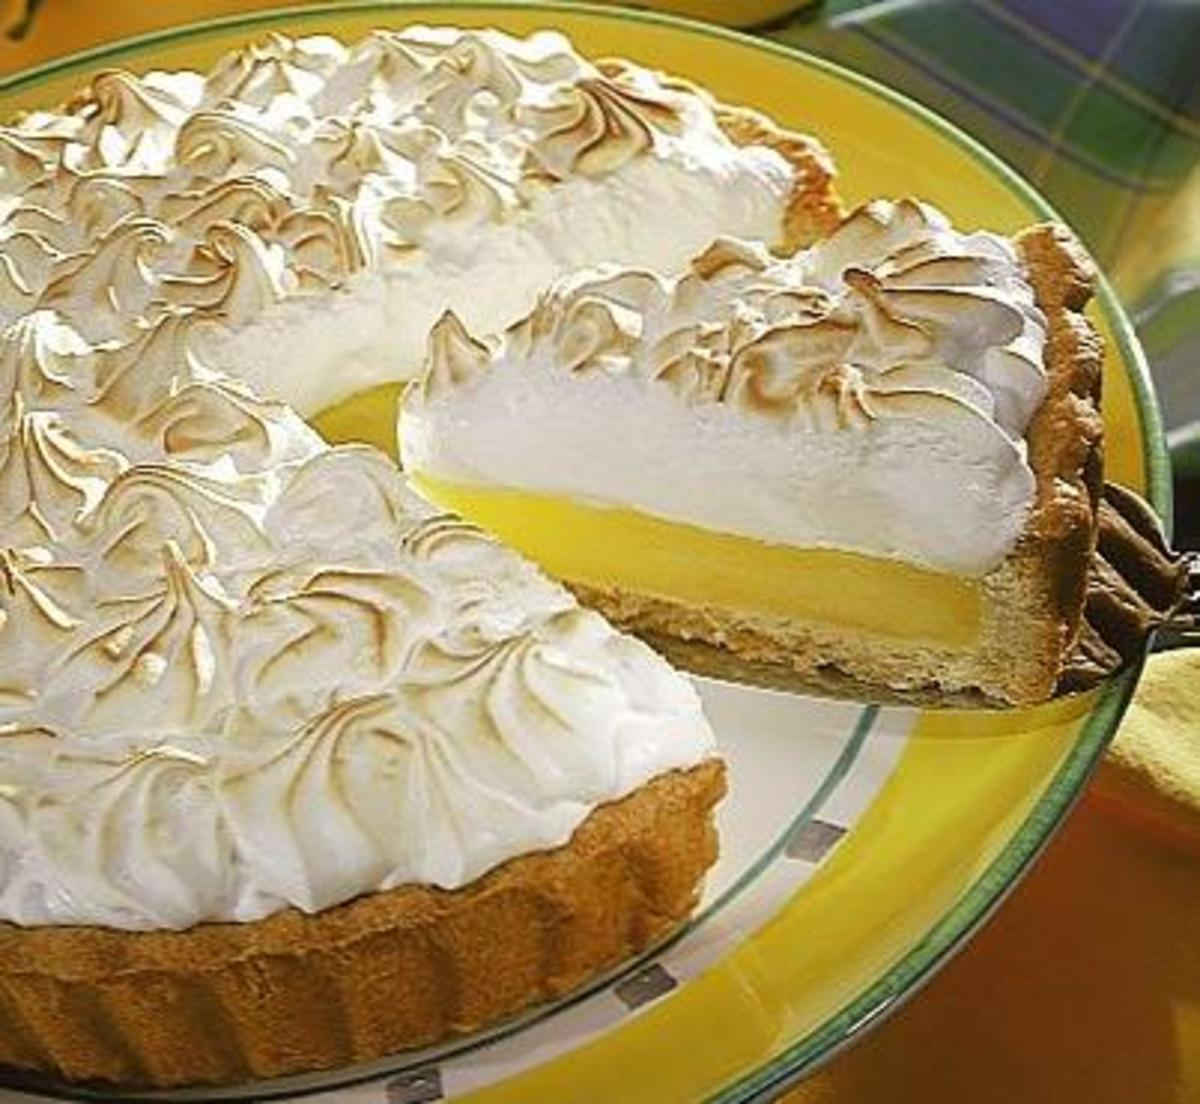 Lemon Meringue Pie Recipe, How to Make a Perfect Lemon Meringue Pie